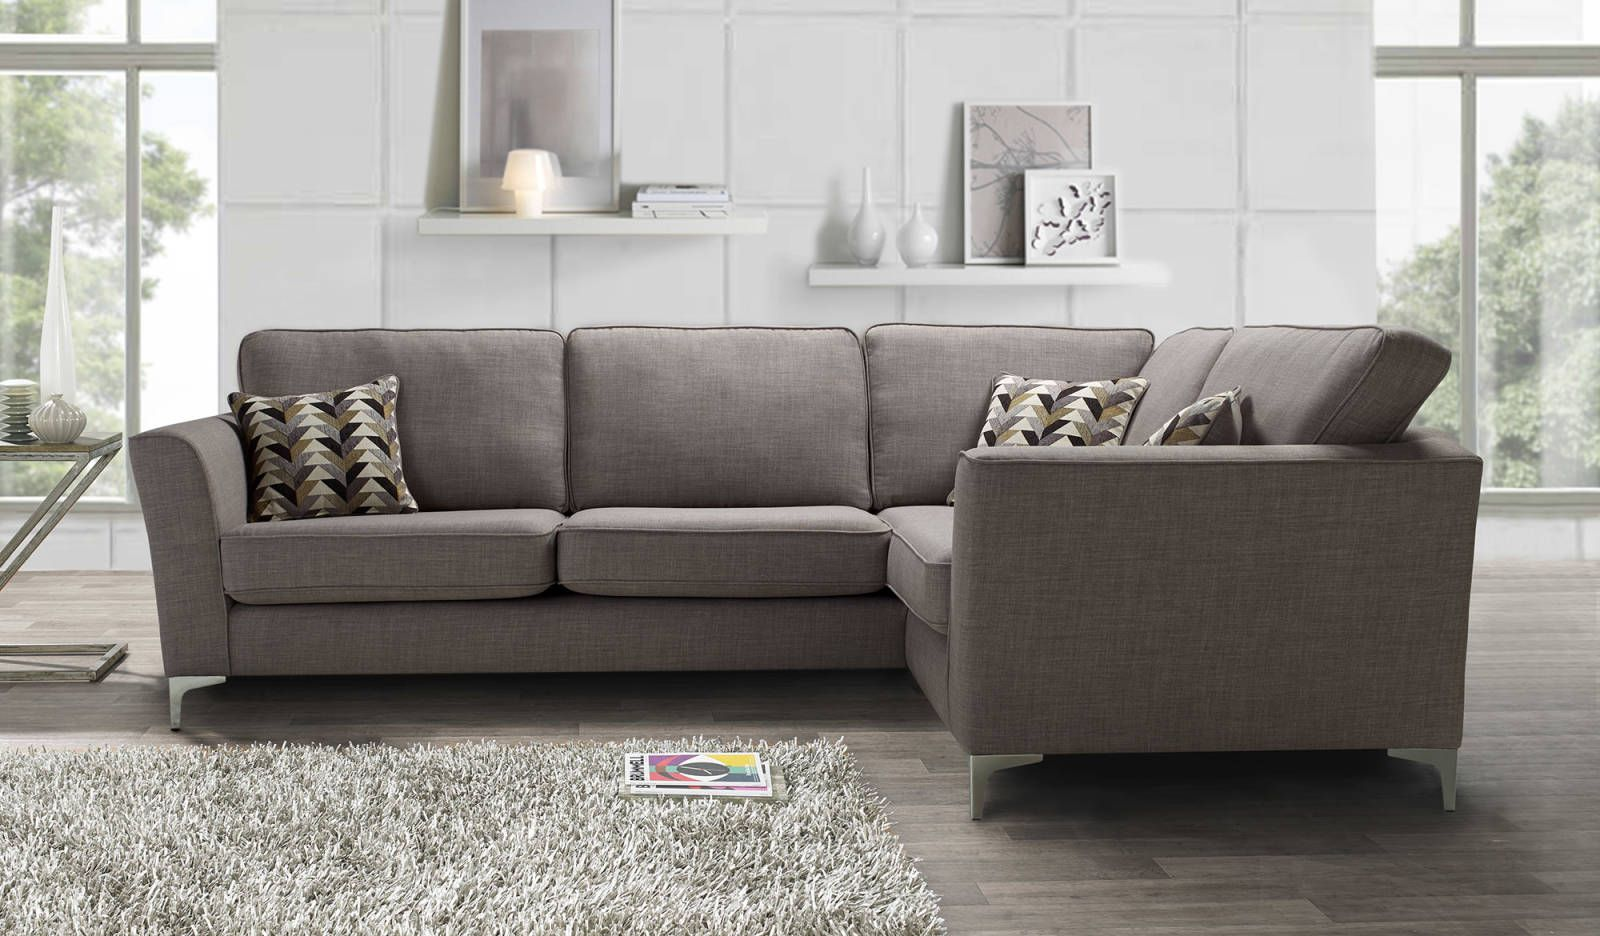 Klassische Sofas You Can Assemble Annan Sofology New House Stuff Sofa Sofa Bed Living Room